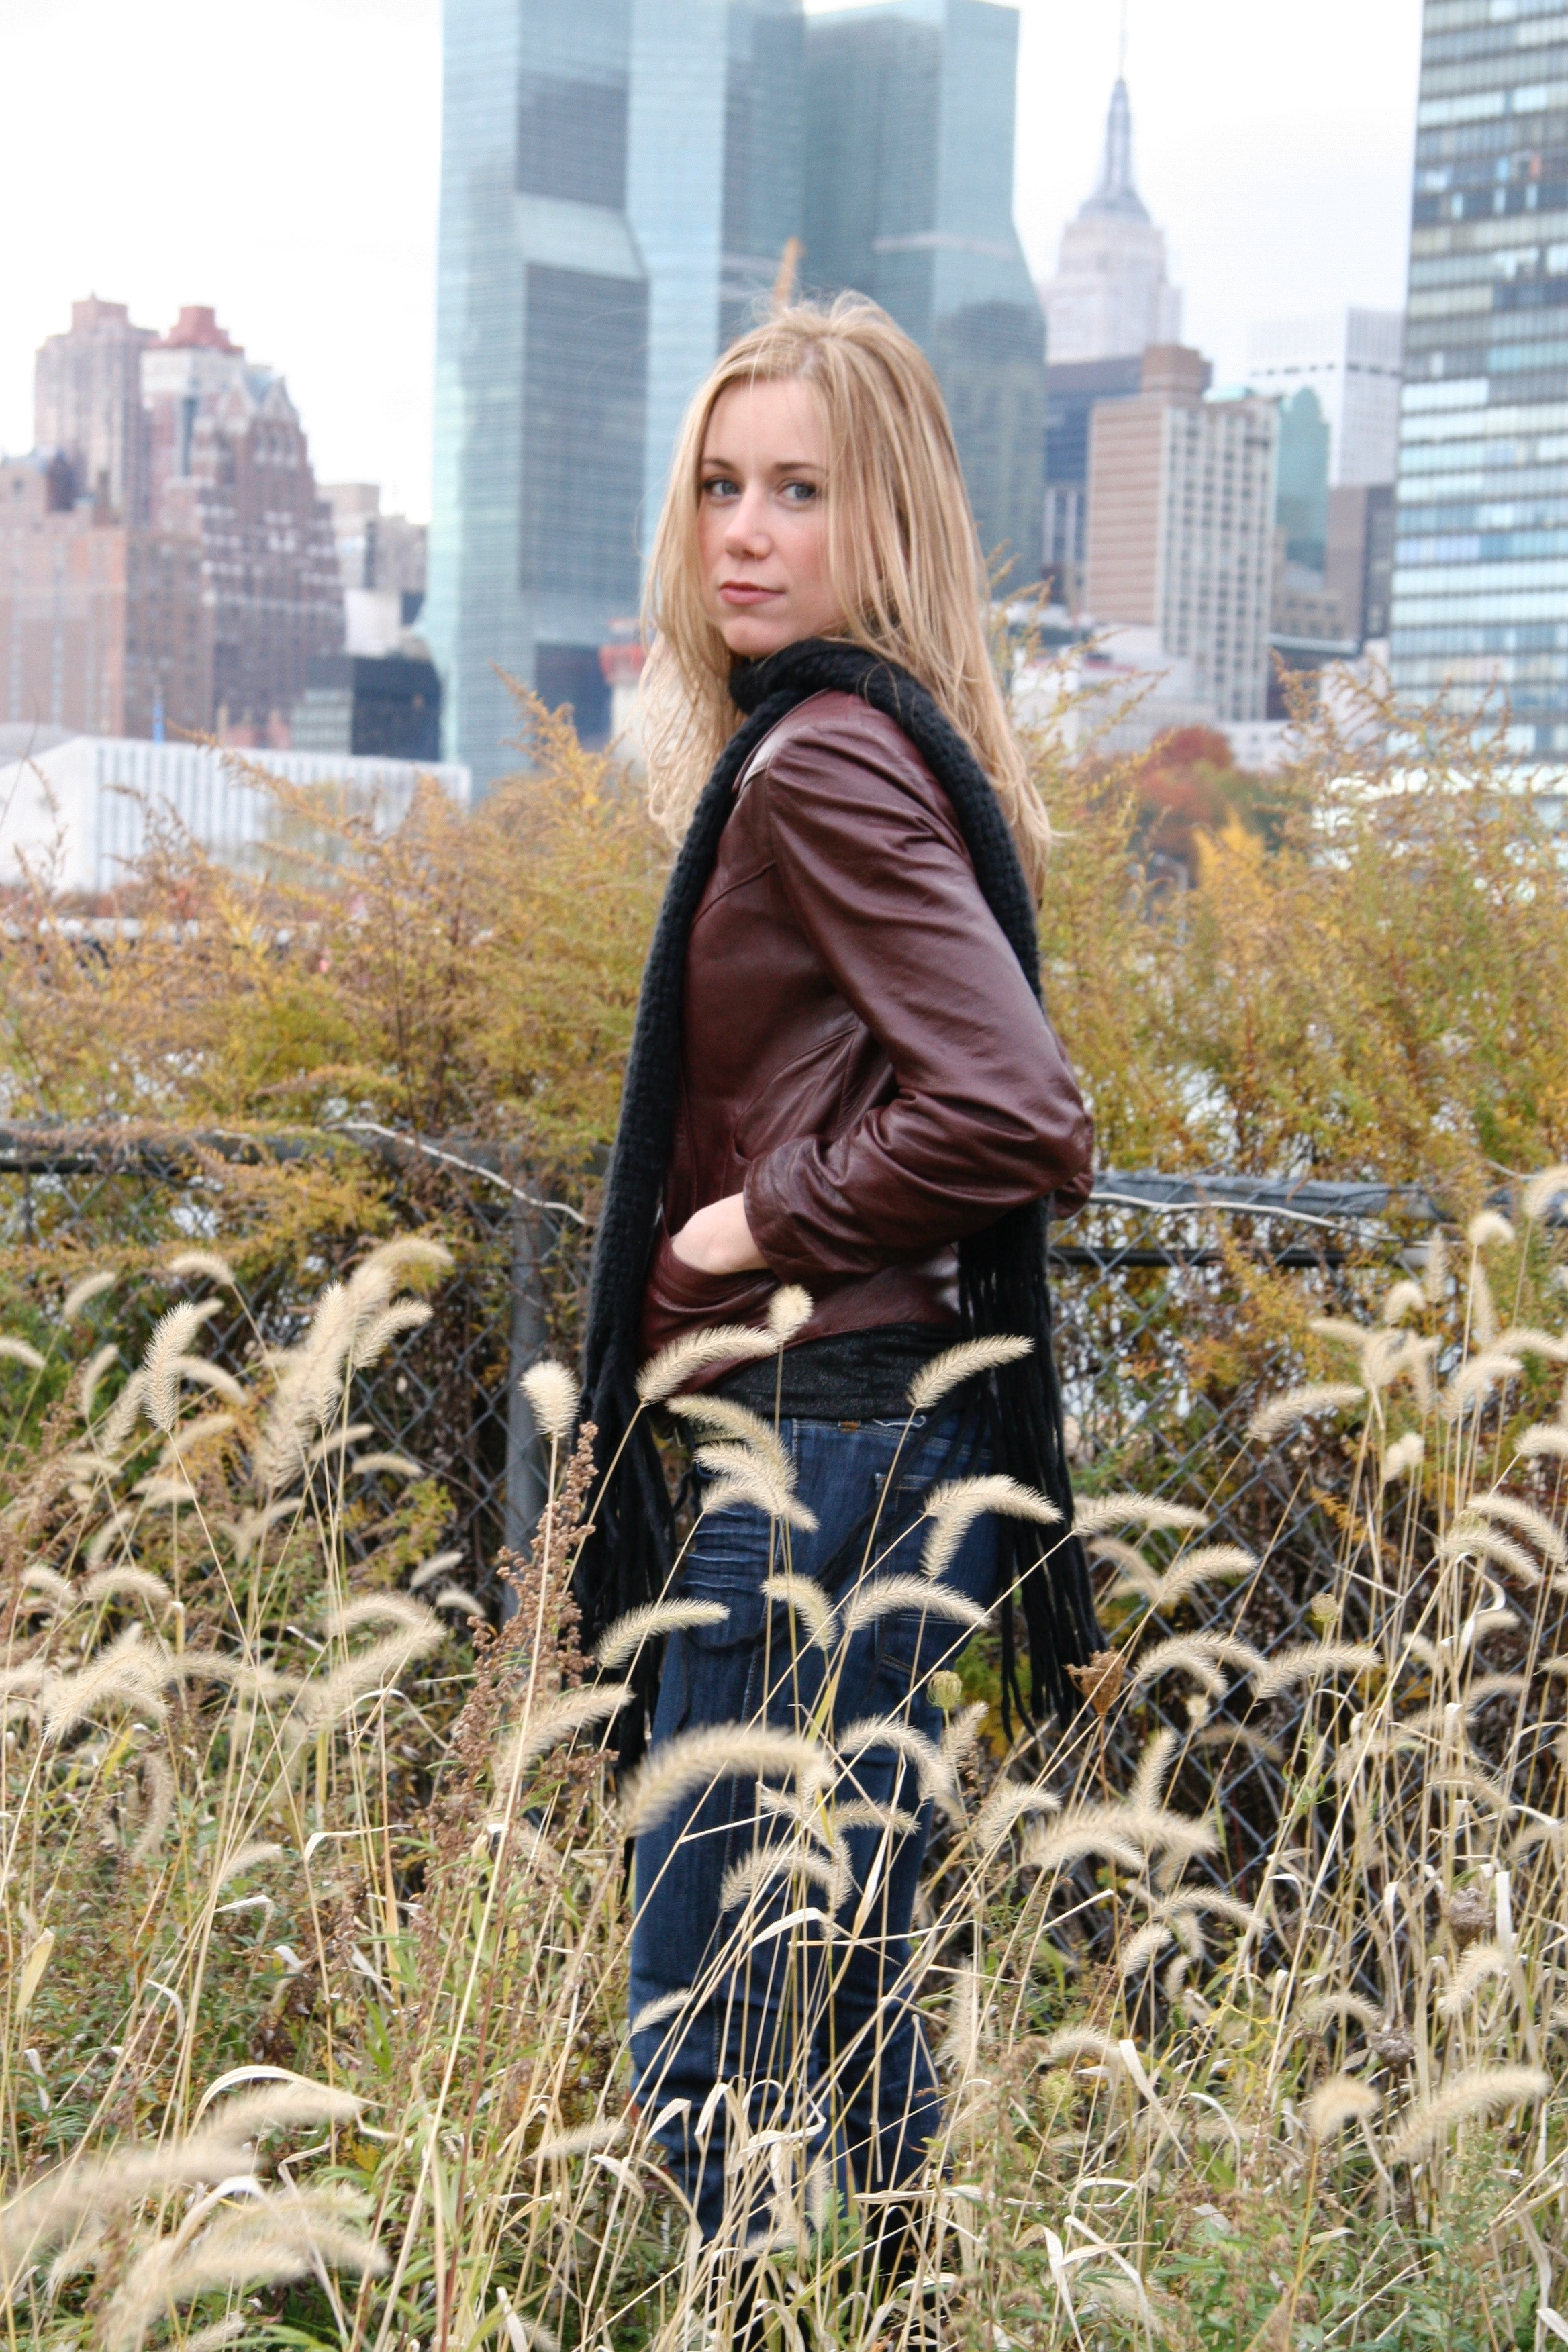 Laura Ault in NYC 2008